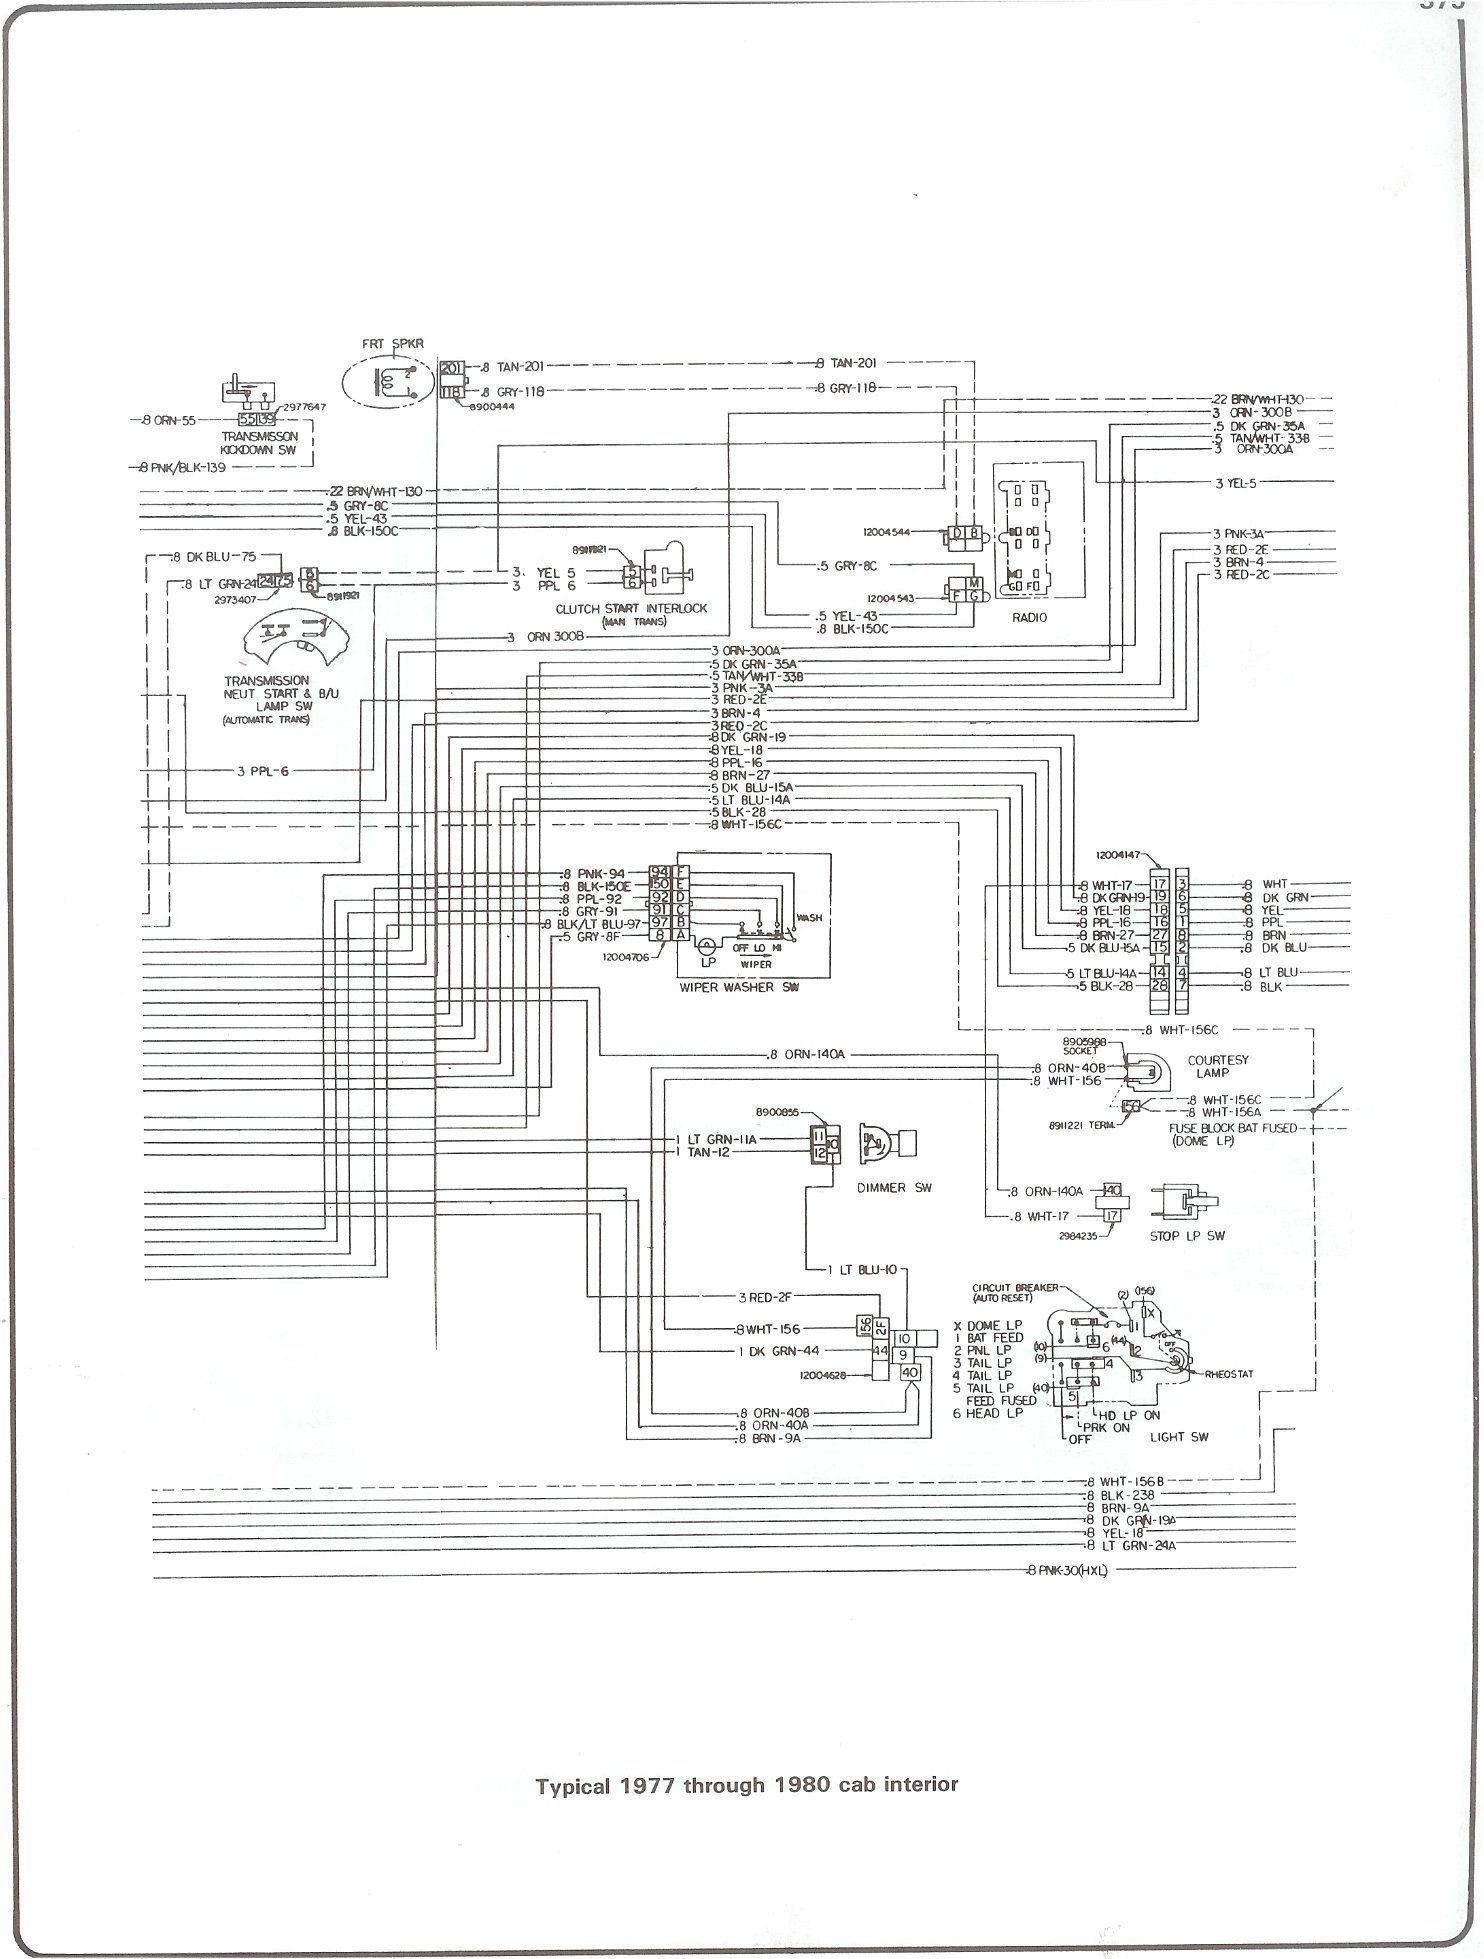 77 80_cab_inter complete 73 87 wiring diagrams 1982 chevy truck engine wiring diagram at fashall.co